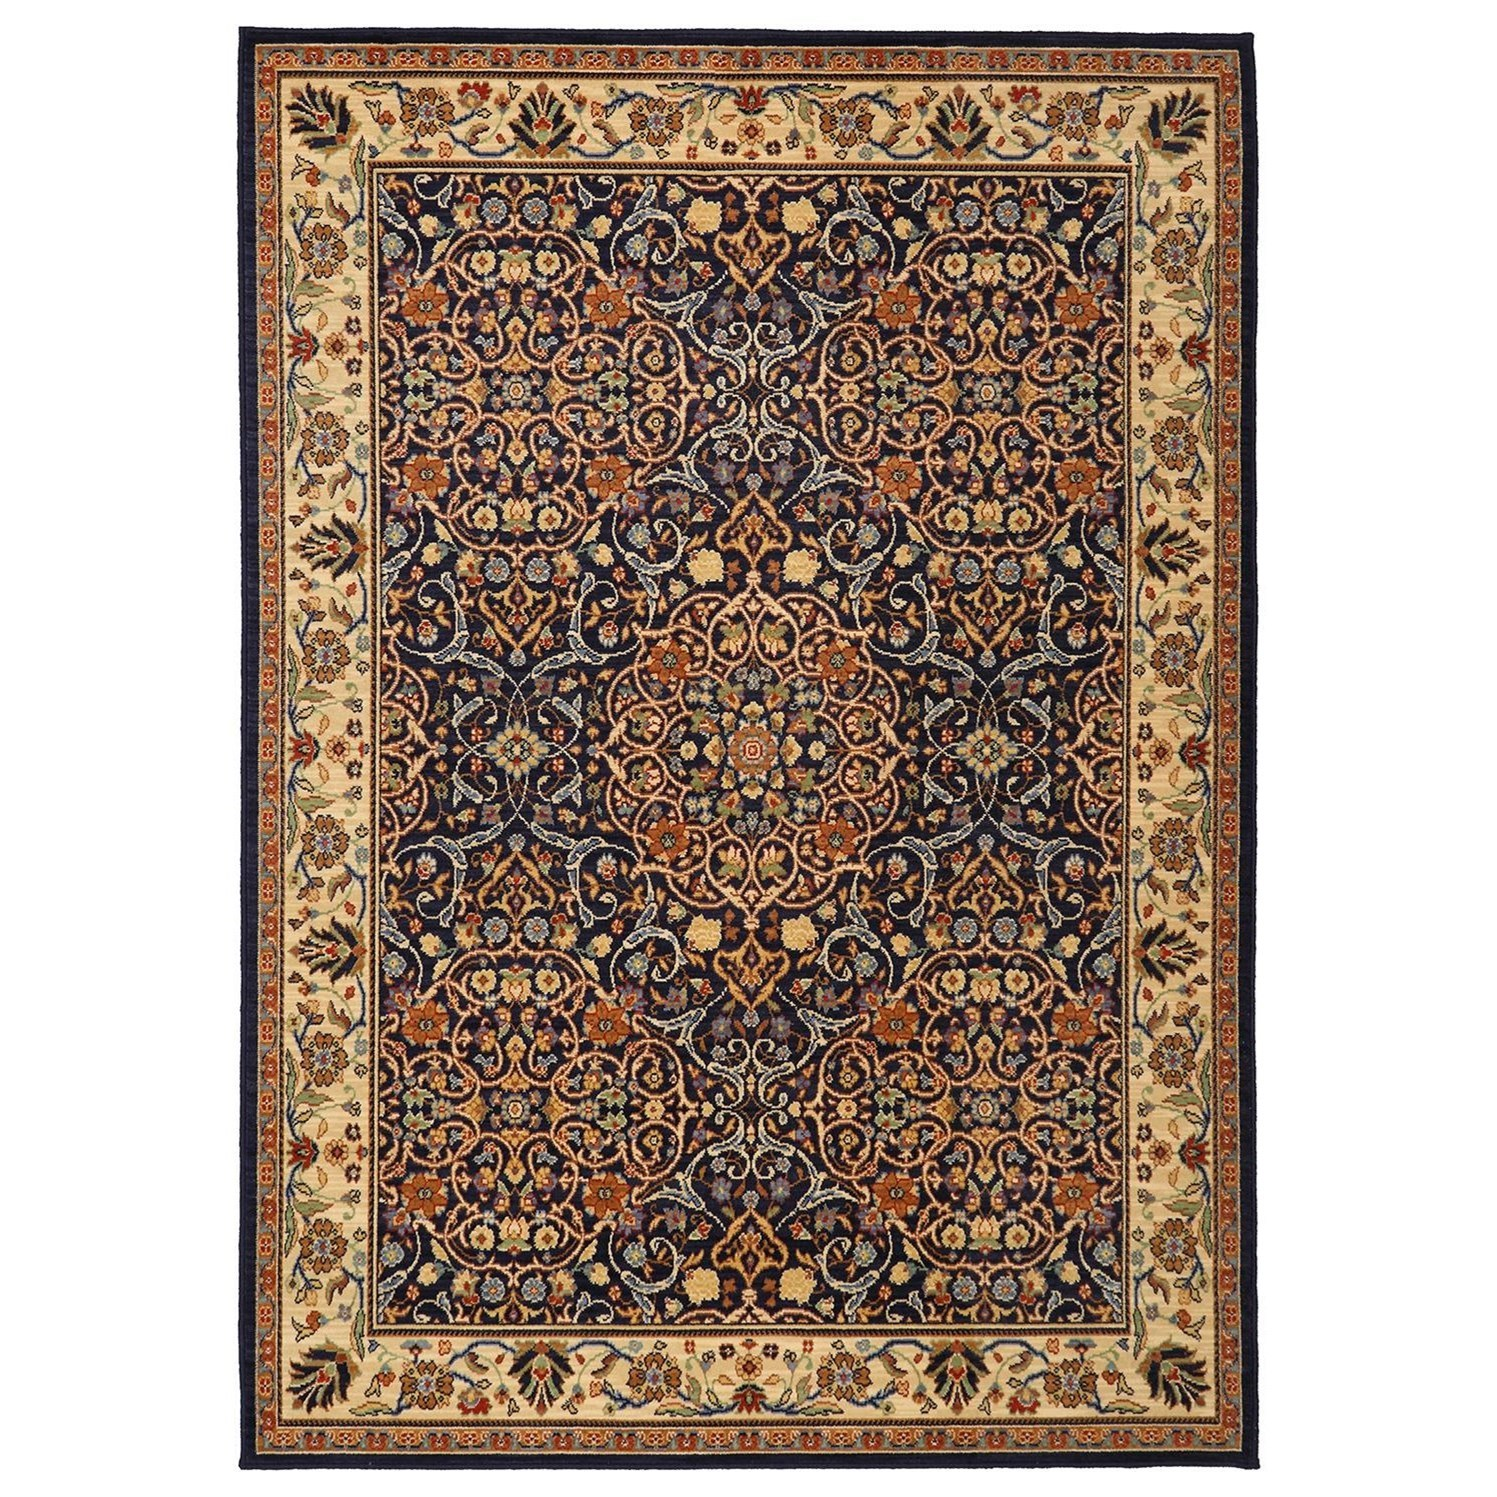 Karastan Rugs English Manor 3'8x5' Sutton Rug - Item Number: 02120 00603 044060